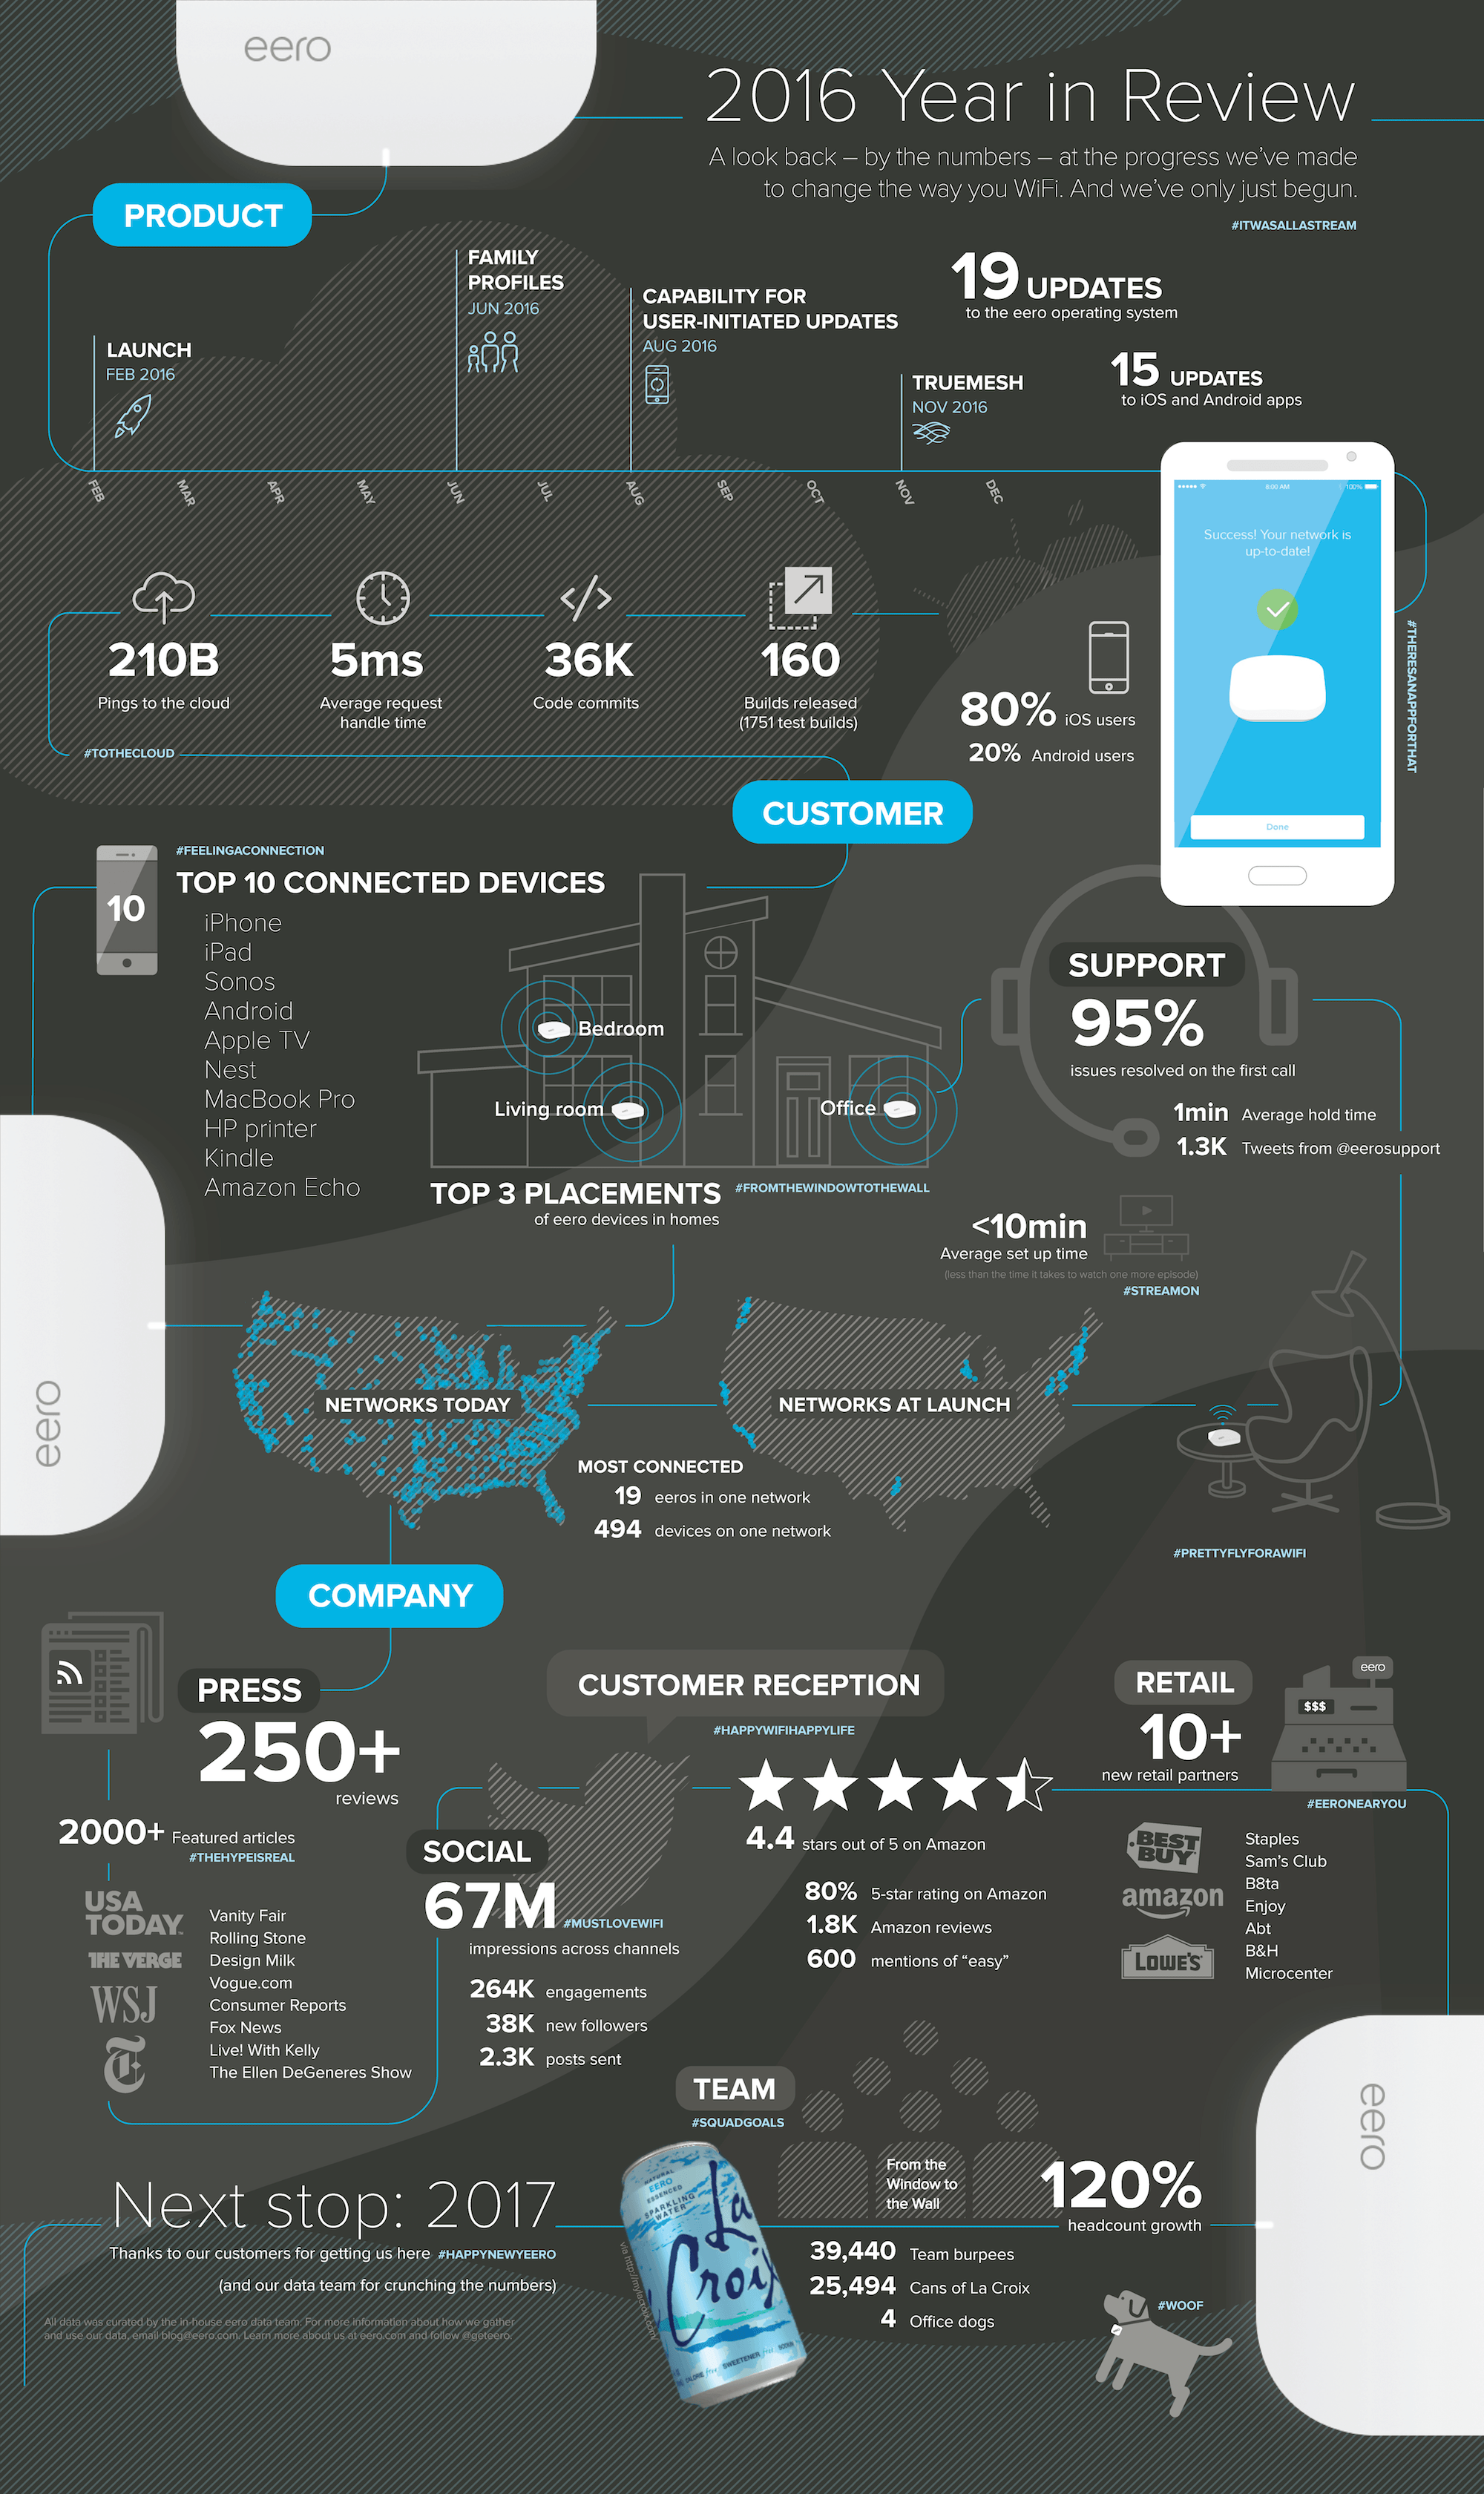 eero 2016 year in review infographic